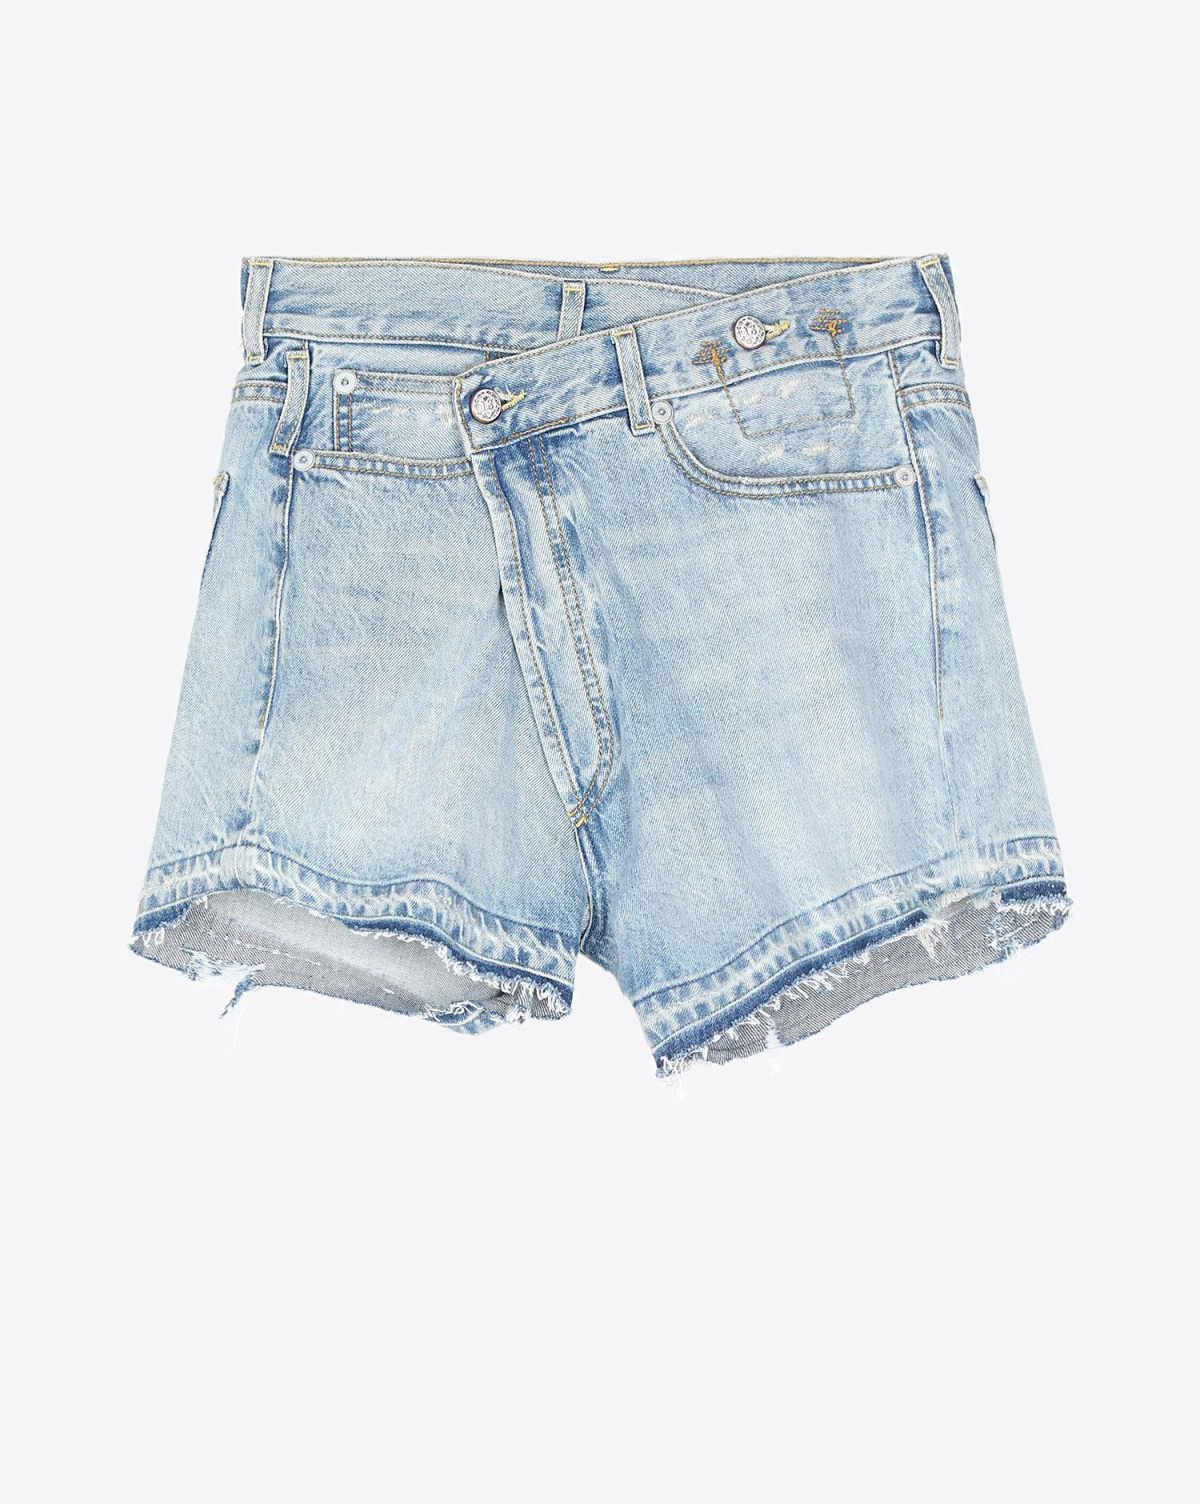 R13 Denim Permanent Cross Over Short - Tilly W Let Down Hem